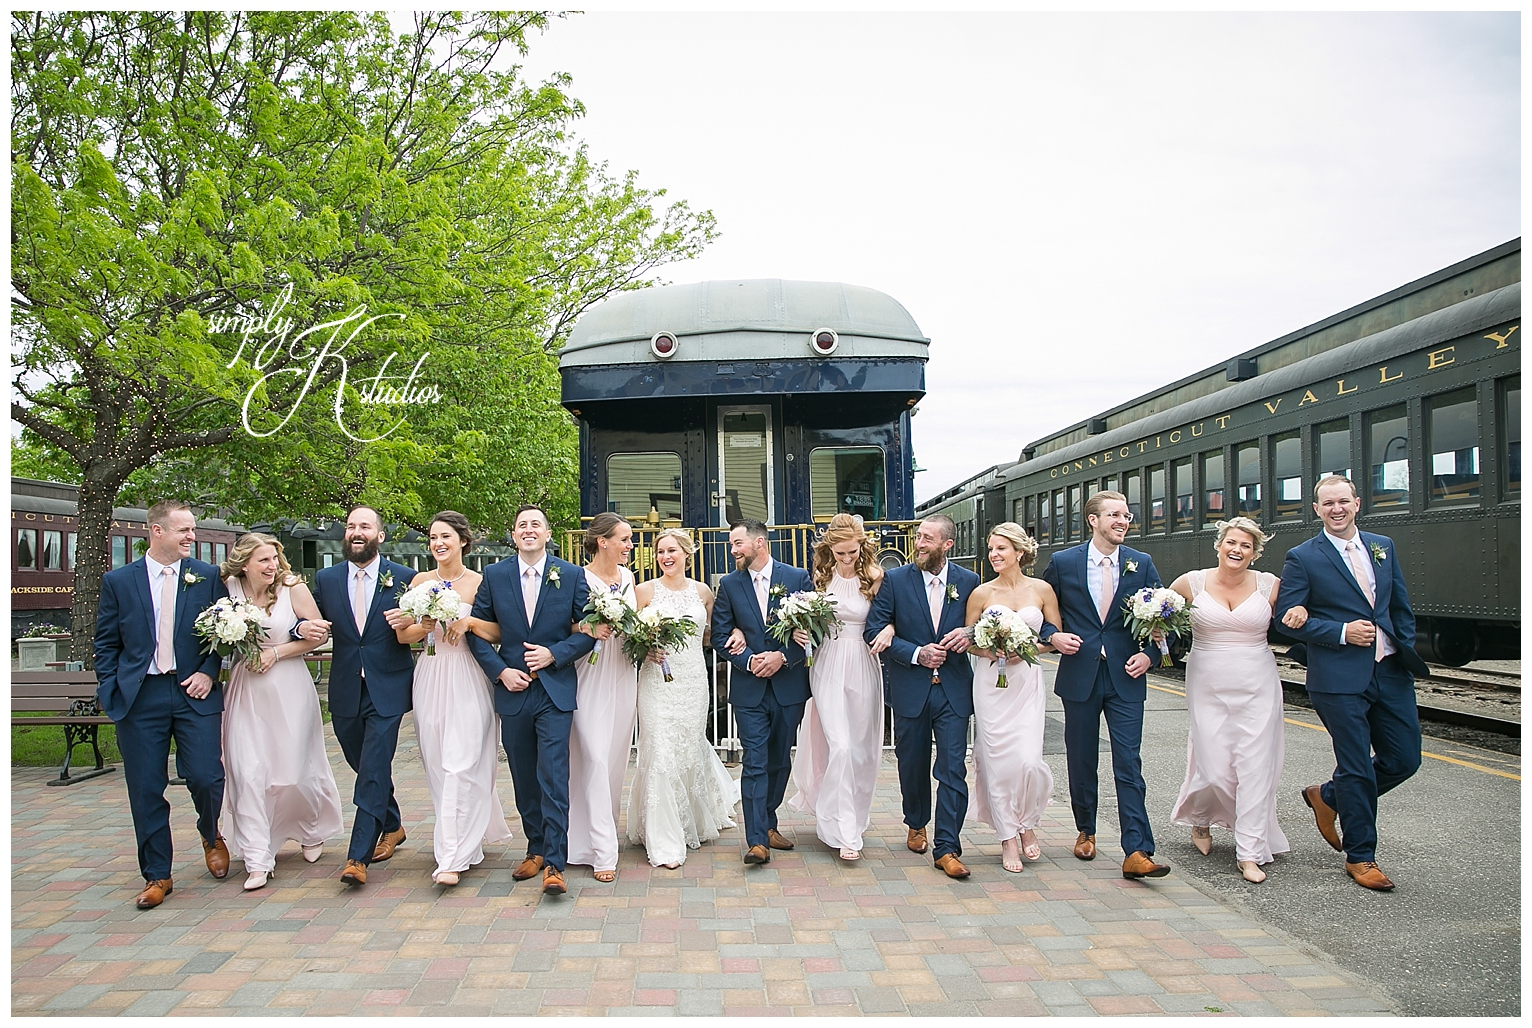 Bridal Party Photos at Essex Steam Train.jpg